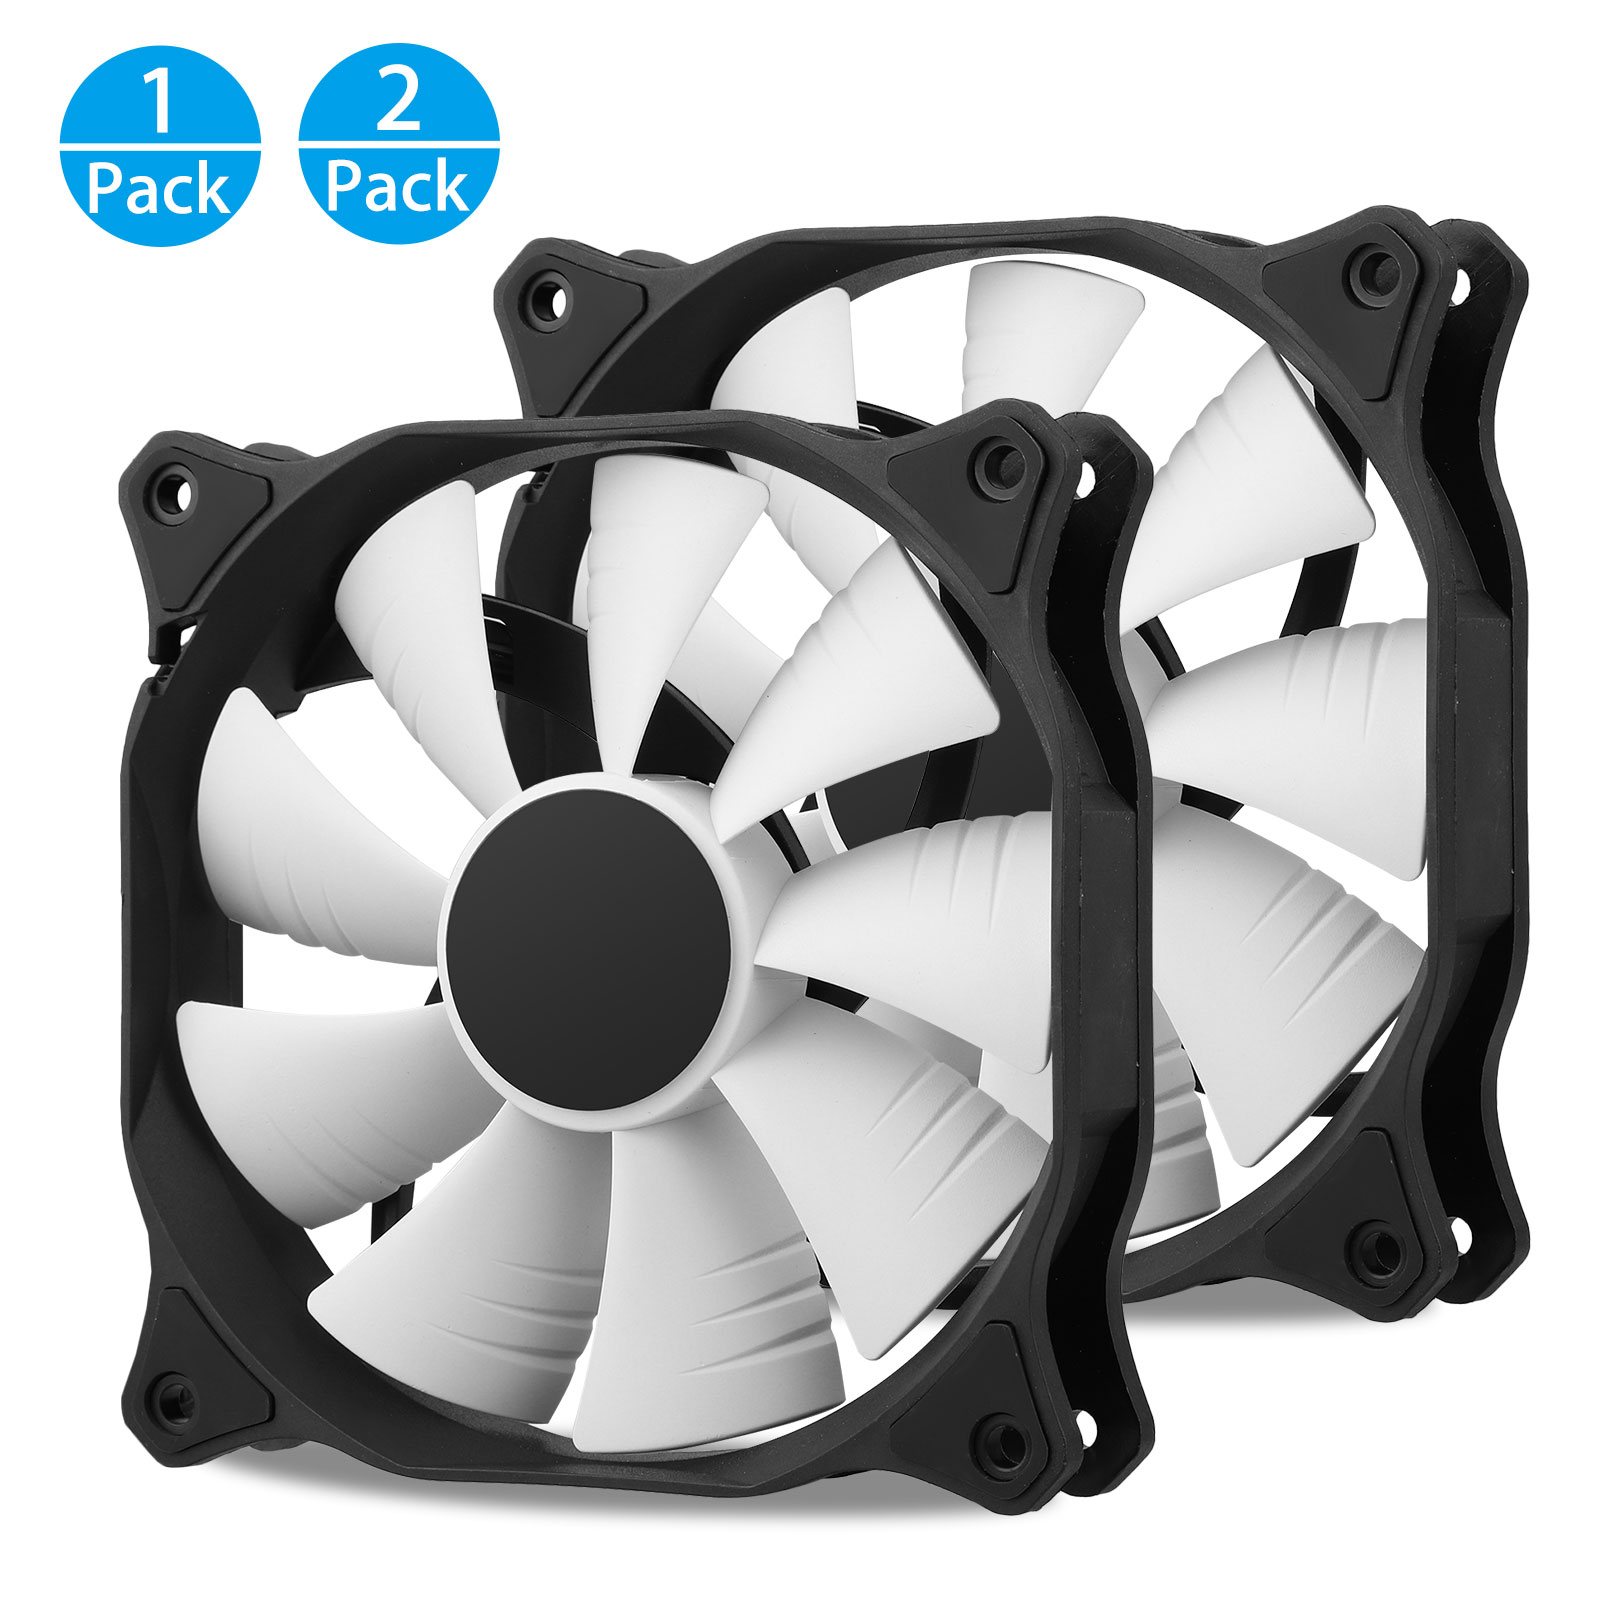 2pack-120mm-4-Pins-12V-Cooling-Case-Fan-for-PC-Desktop-Computer-Quiet-CPU-Cooler thumbnail 12